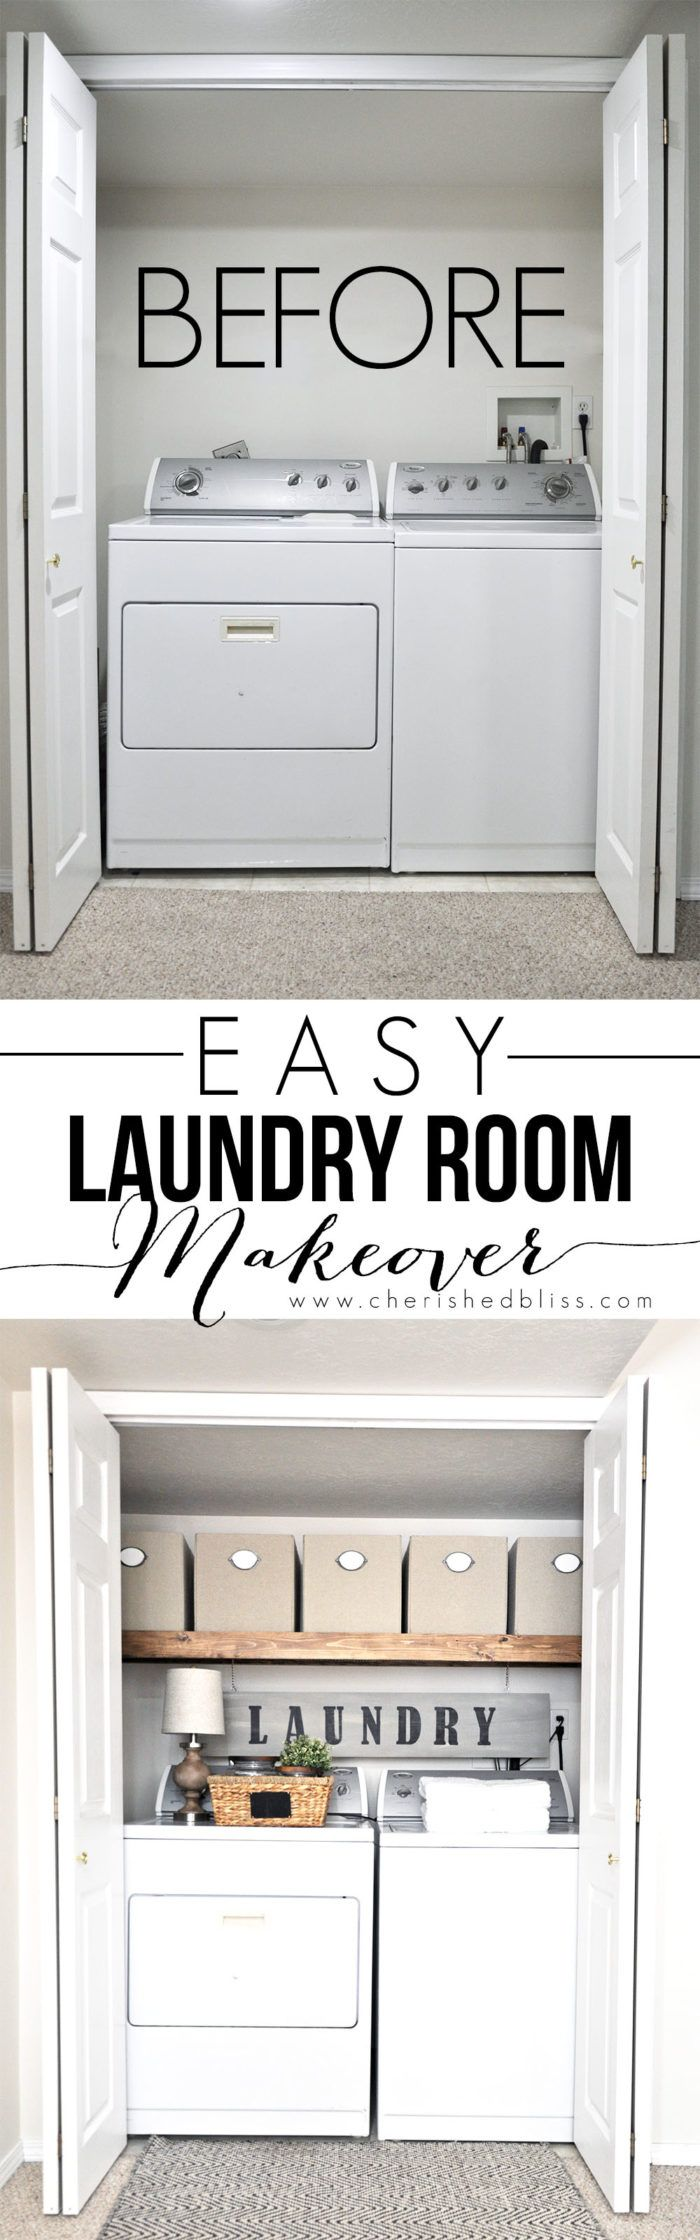 This Laundry Room Makeover transforms this little closet with wasted space into…                                                                                                                                                                                 More